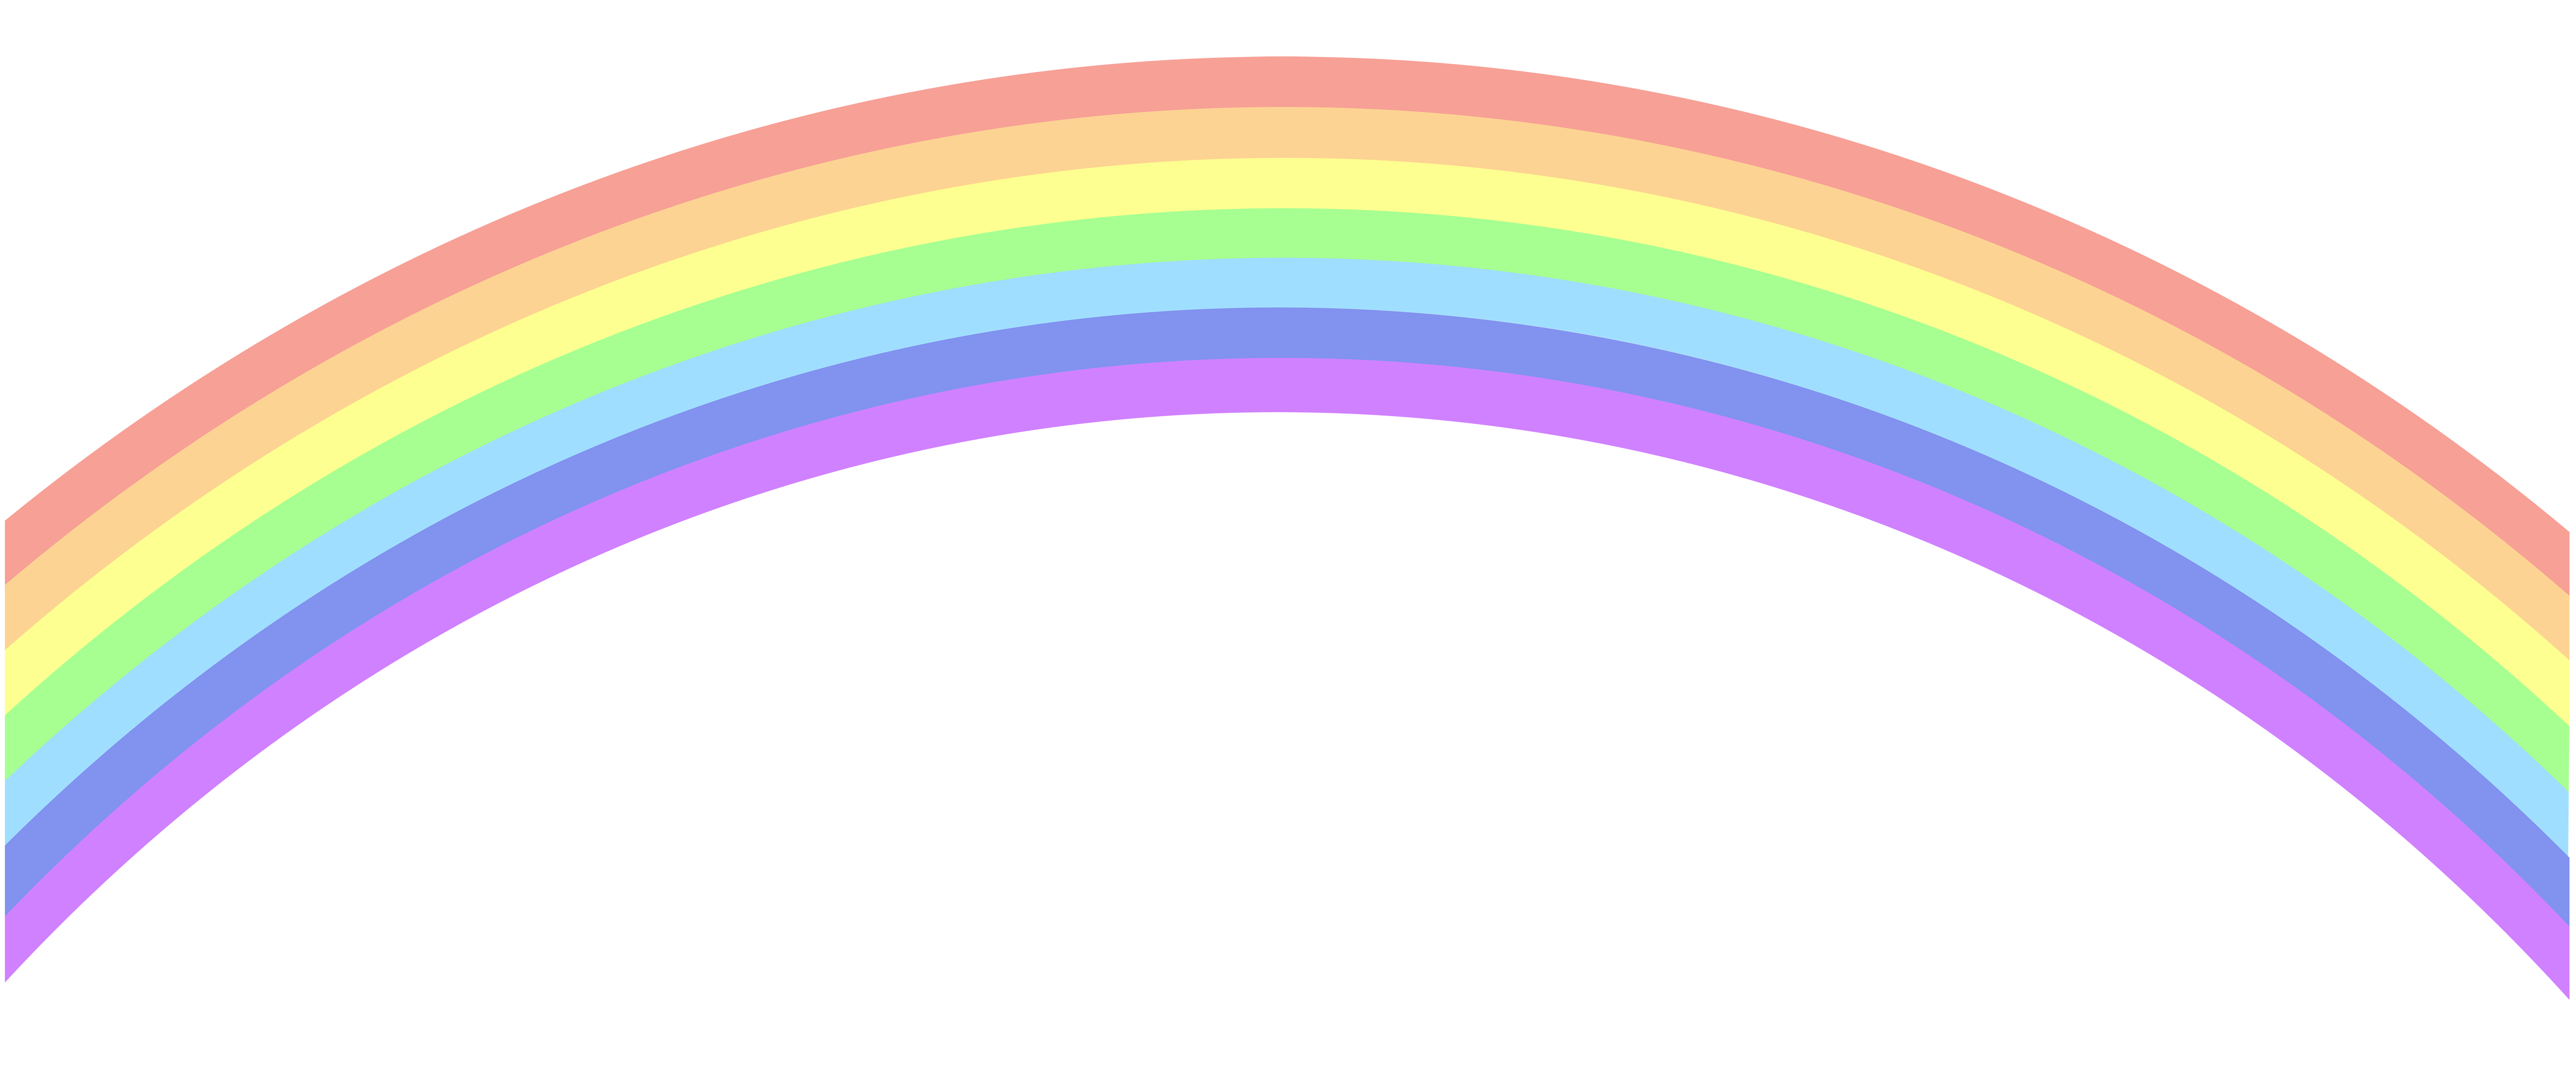 Rainbow banner png. Clip art image gallery